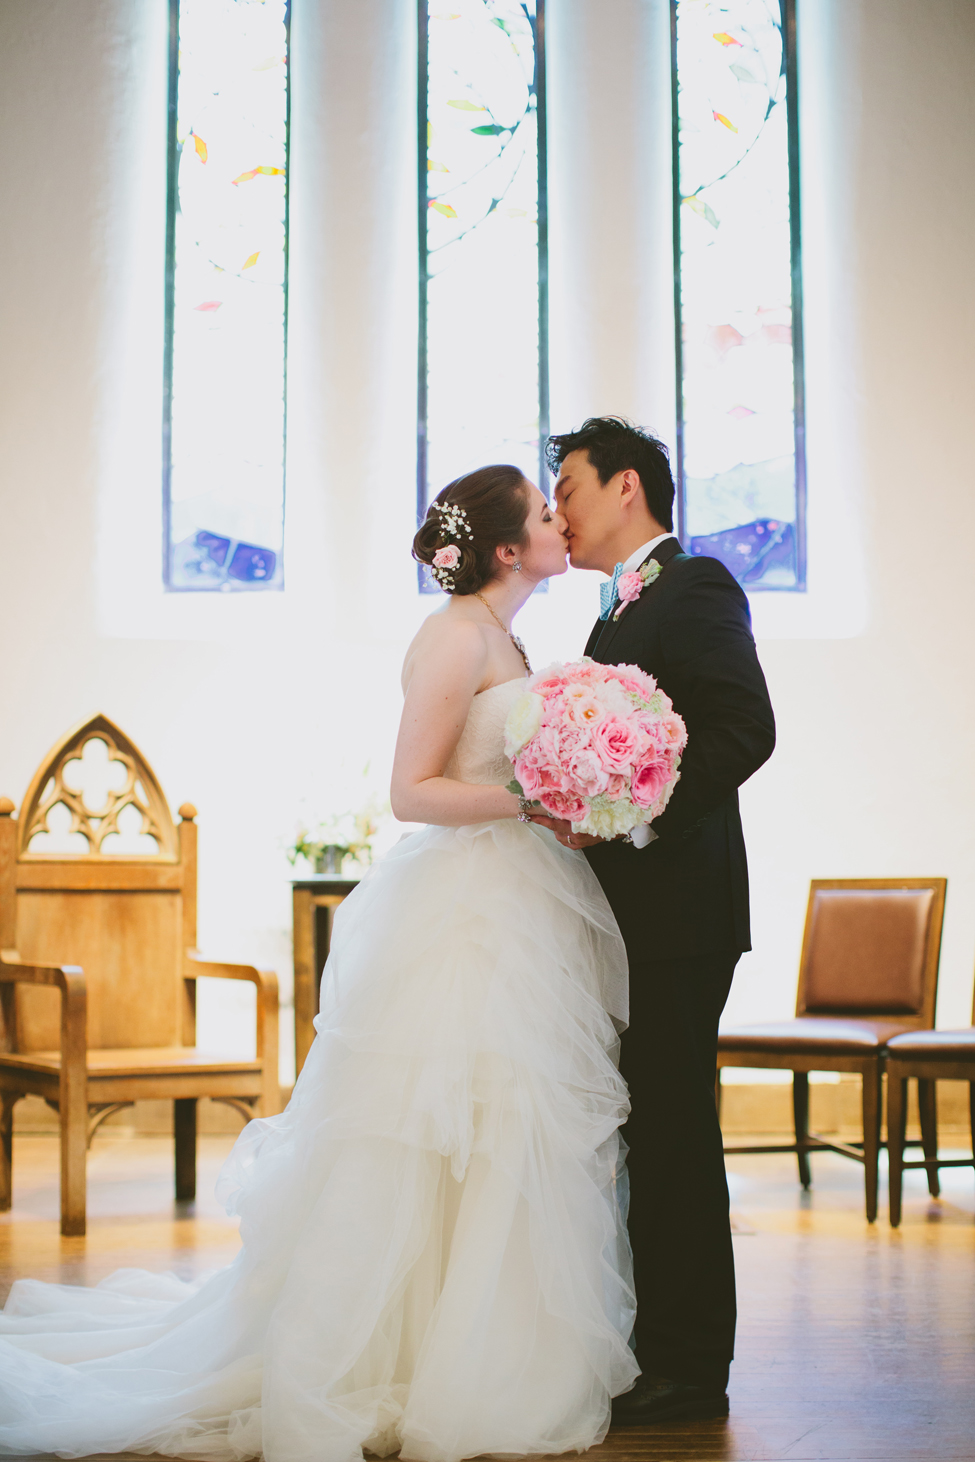 Caitlin-Kyungmin-wedding32.jpg